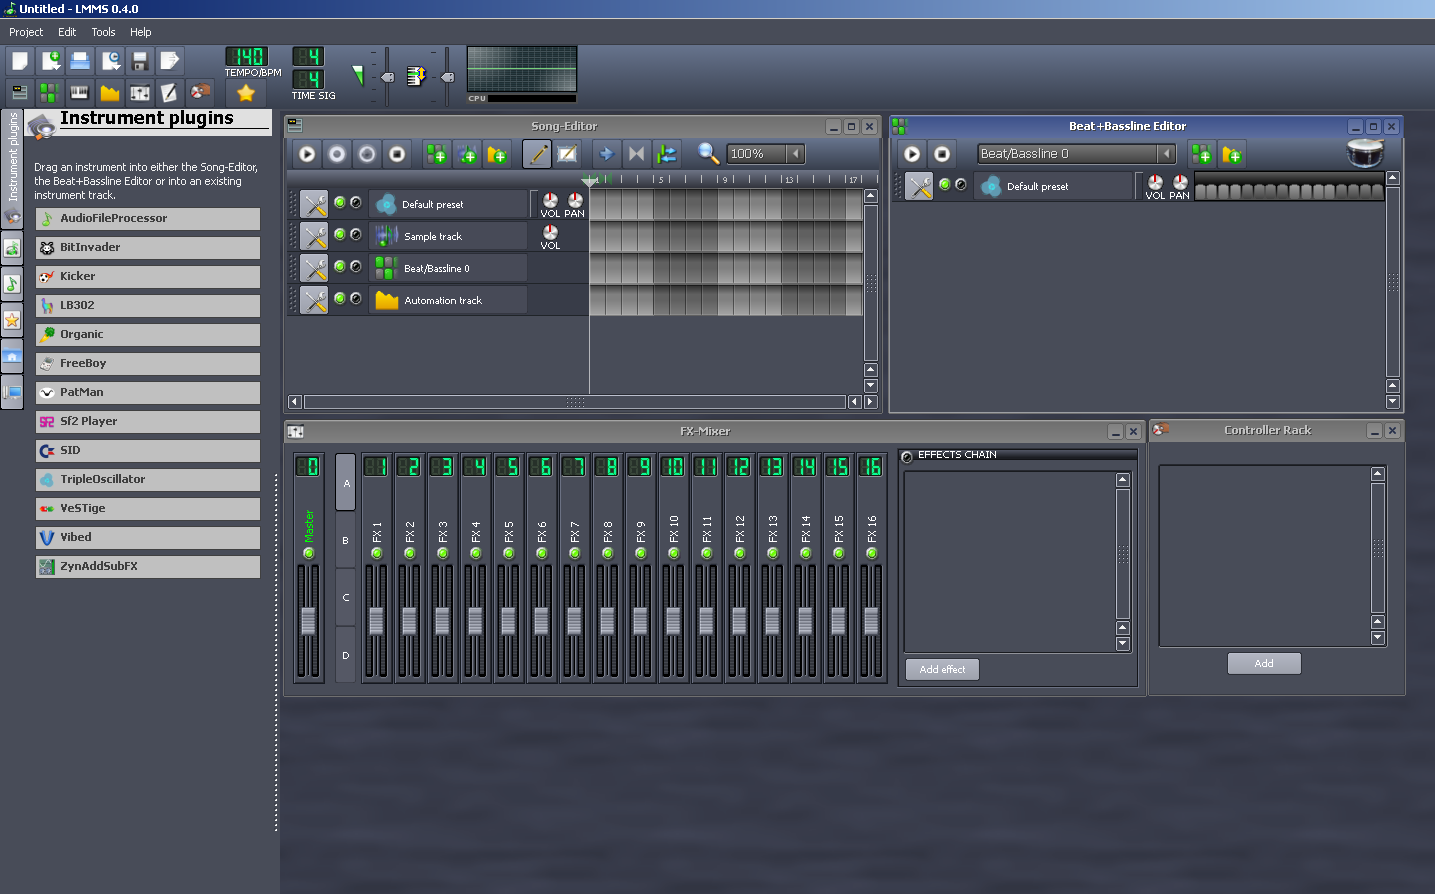 LMMS_0.4.0_ScreenShot.png